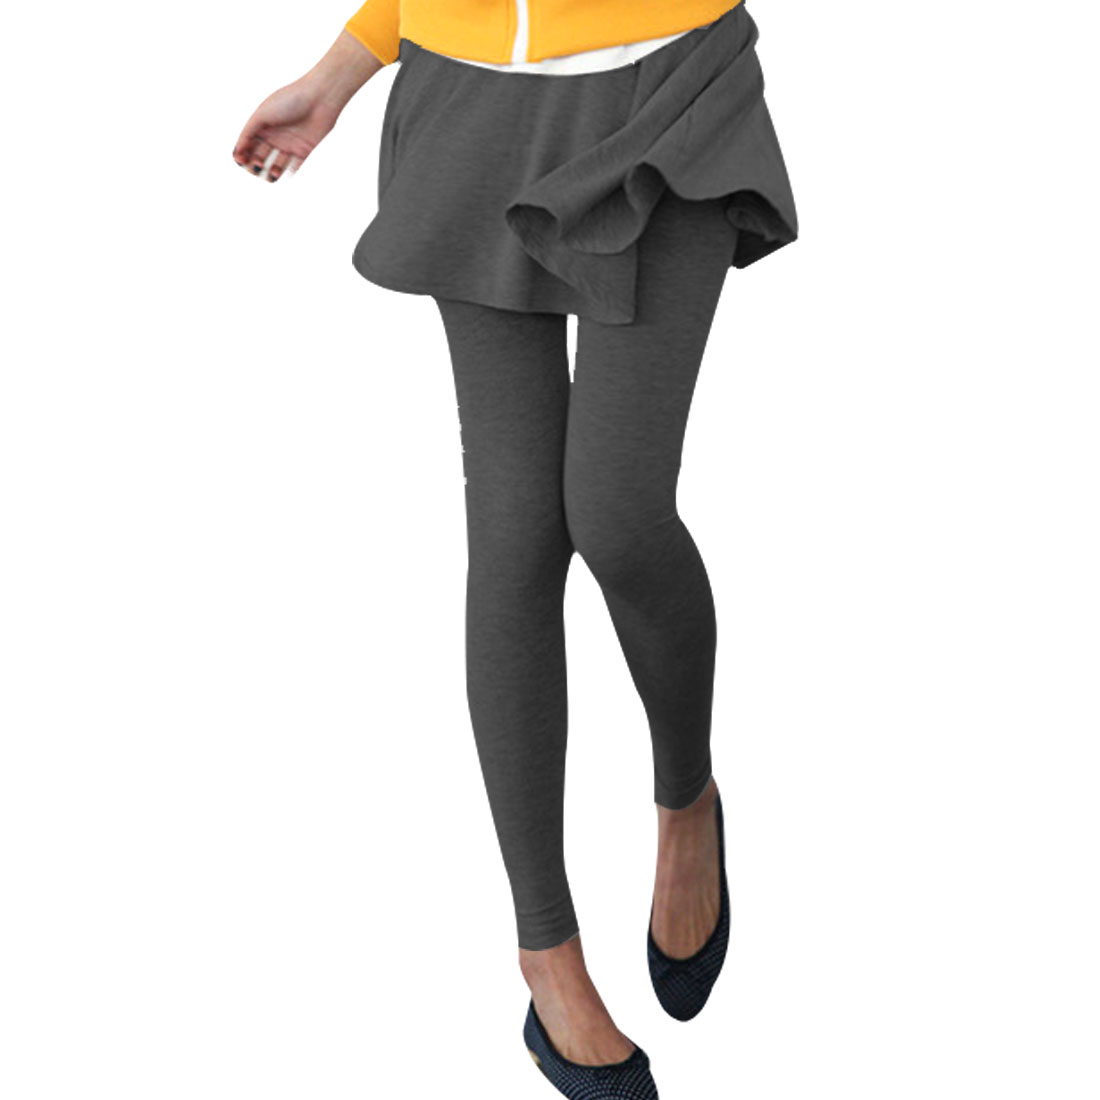 Dark Gray Stretchy Waist Fake 2 Pieces Thin Pantskirt Leggings XS for Lady